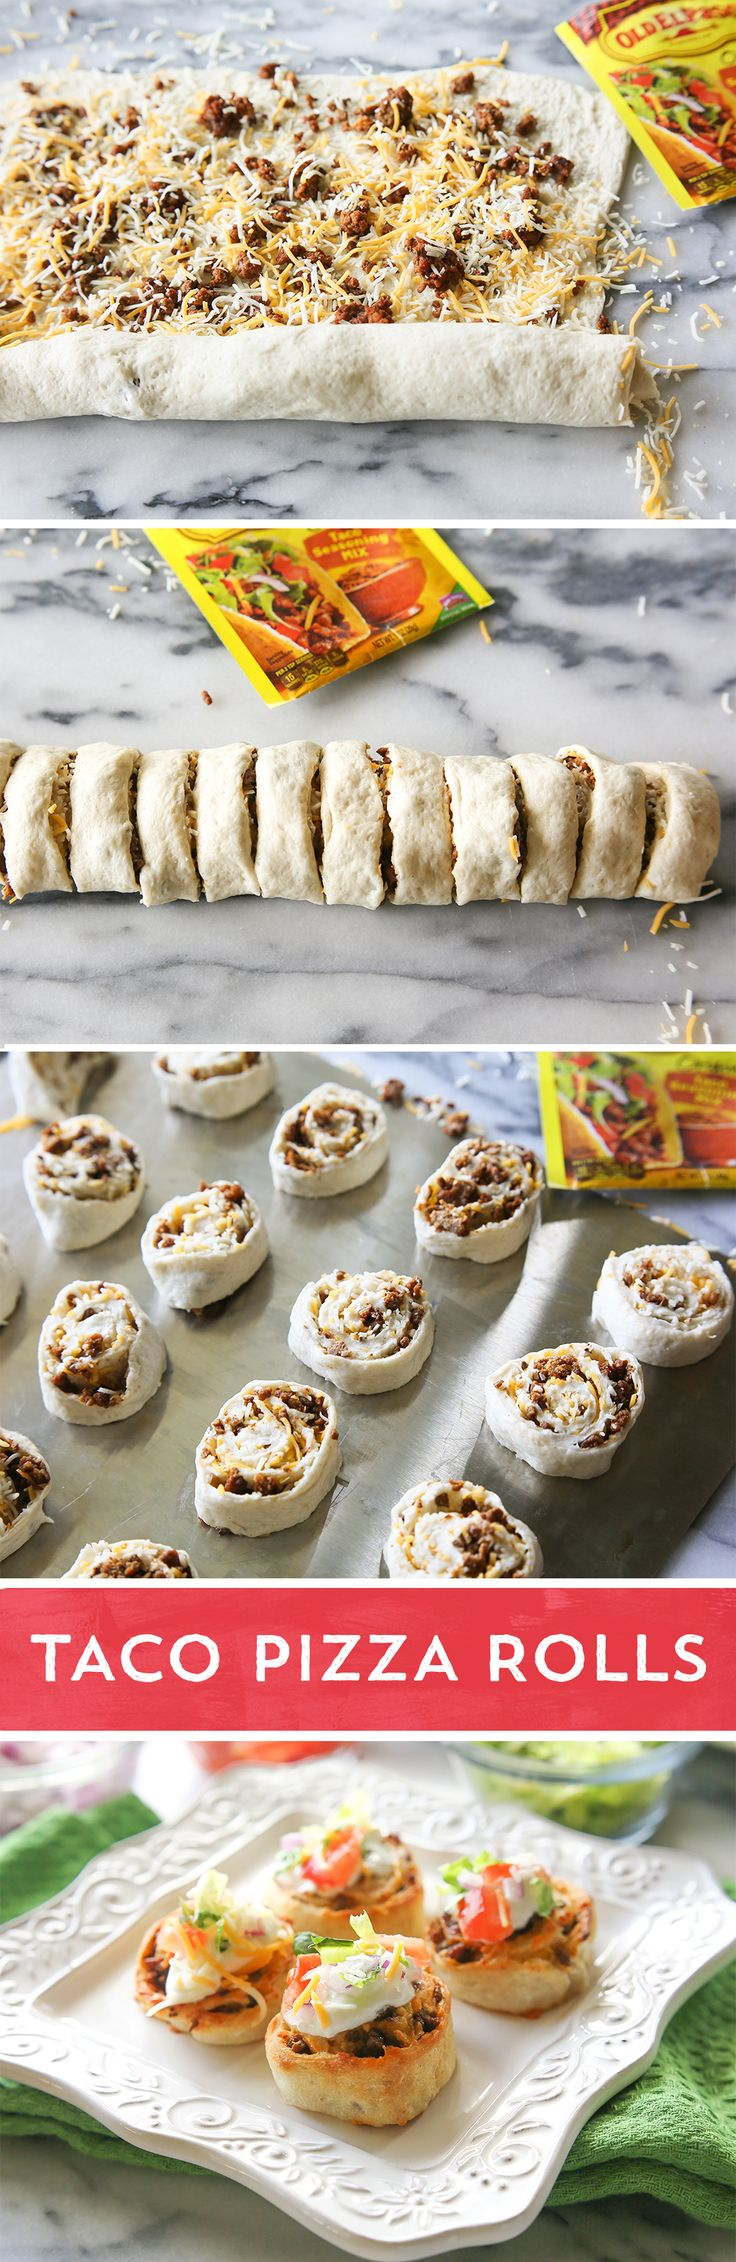 Tacos + Pizza! Two family favorites combine for one amazing meal ready in 30 minutes. Refrigerated pizza dough, ground beef, Old El Paso™ taco seasoning, and shredded cheese get rolled up and baked into tasty handheld bites. Top each with your favorite taco toppings for a fun appetizer or meal. School nights will never be the same.